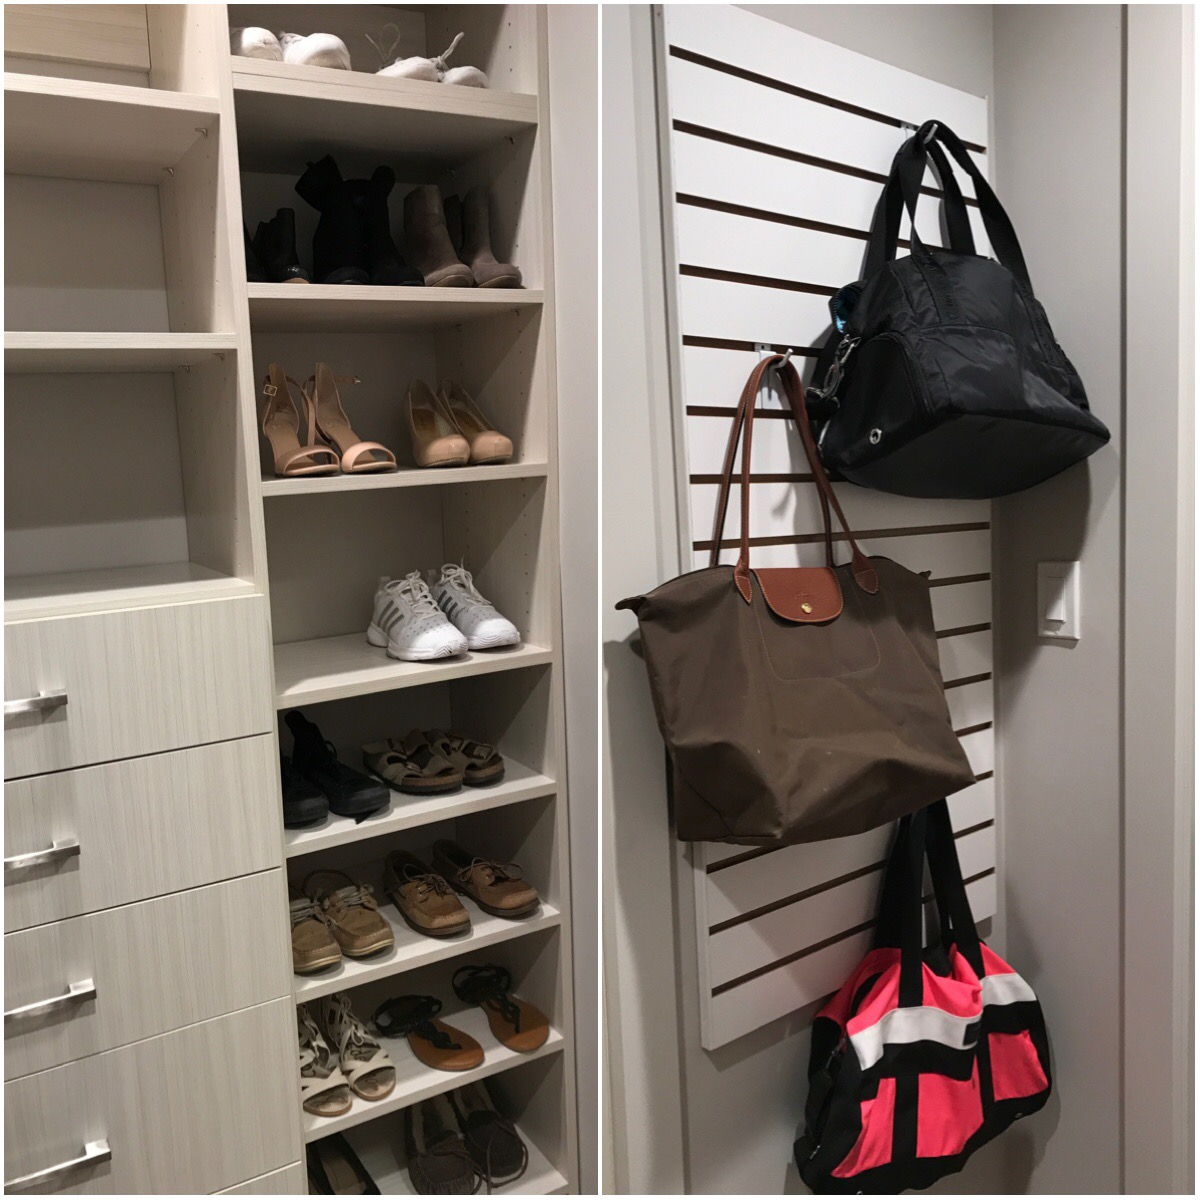 Quality closet storage can make all the difference in keeping kids and teens organized. This custom closet shelving, shoe rack and slatwall was designed for a student at Bishop Kelley High School.  Call Closets of Tulsa  today for a FREE consultation and 3-D closet design:  918.609.0214